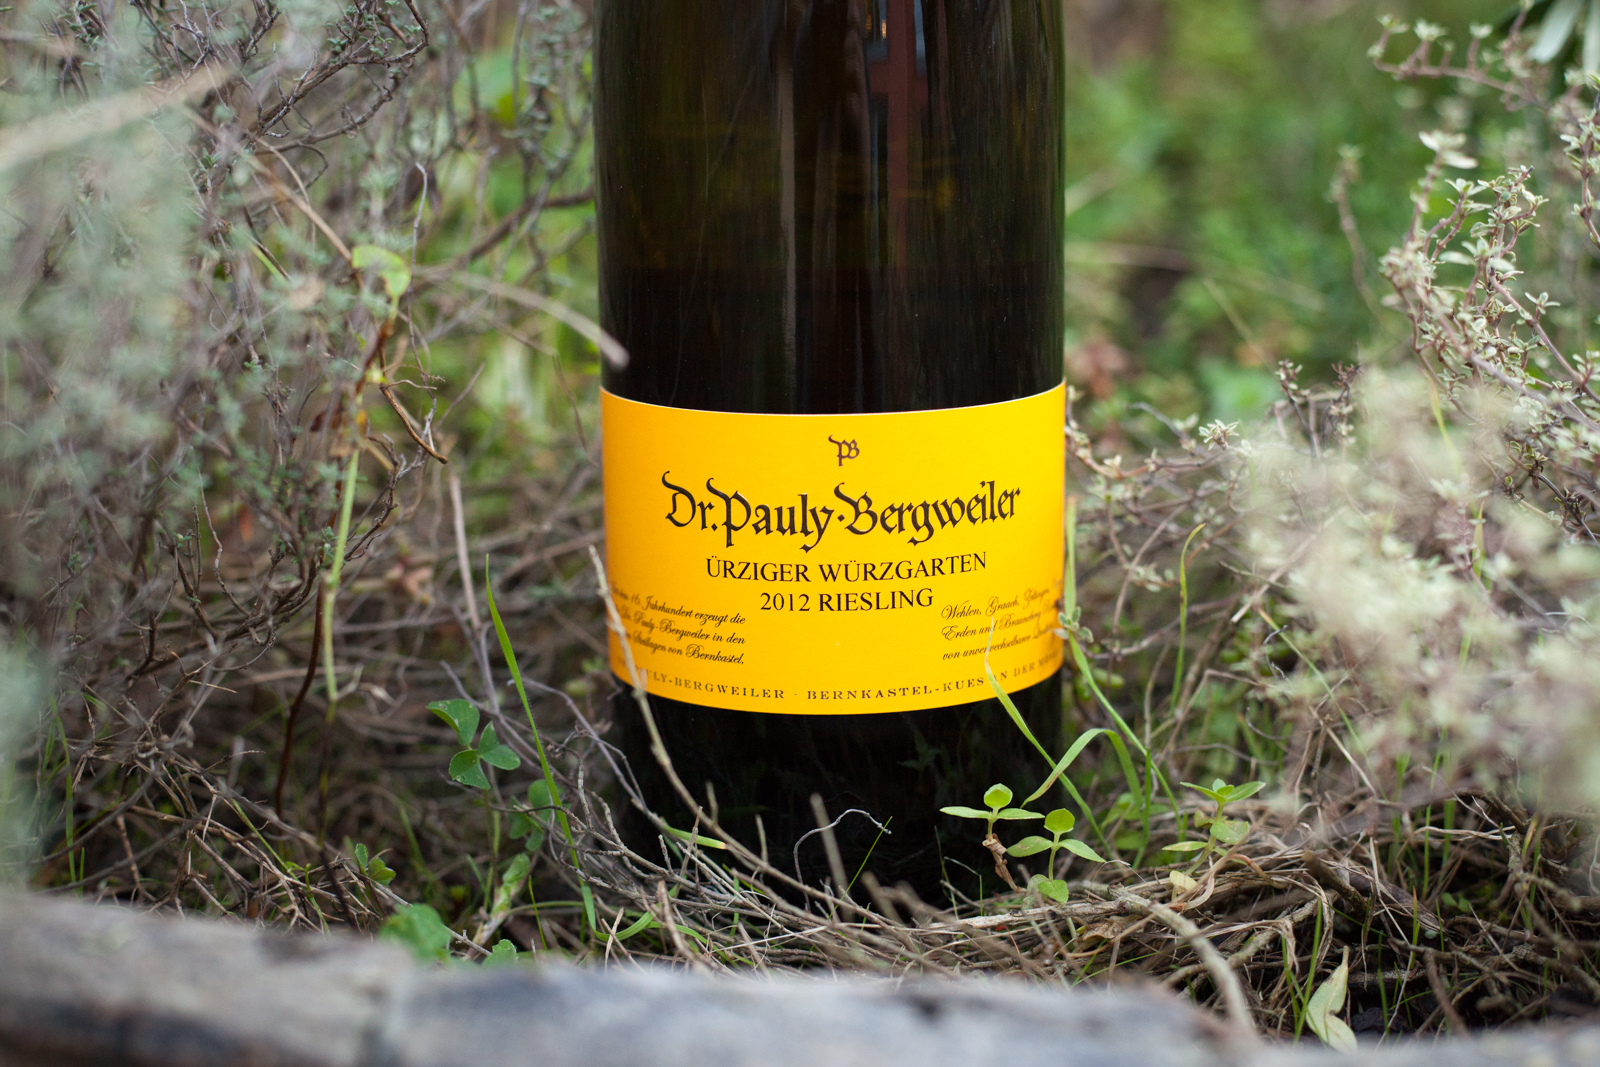 Wines of Dr. Pauly Bergweiler ©Kevin Day/Opening a Bottle